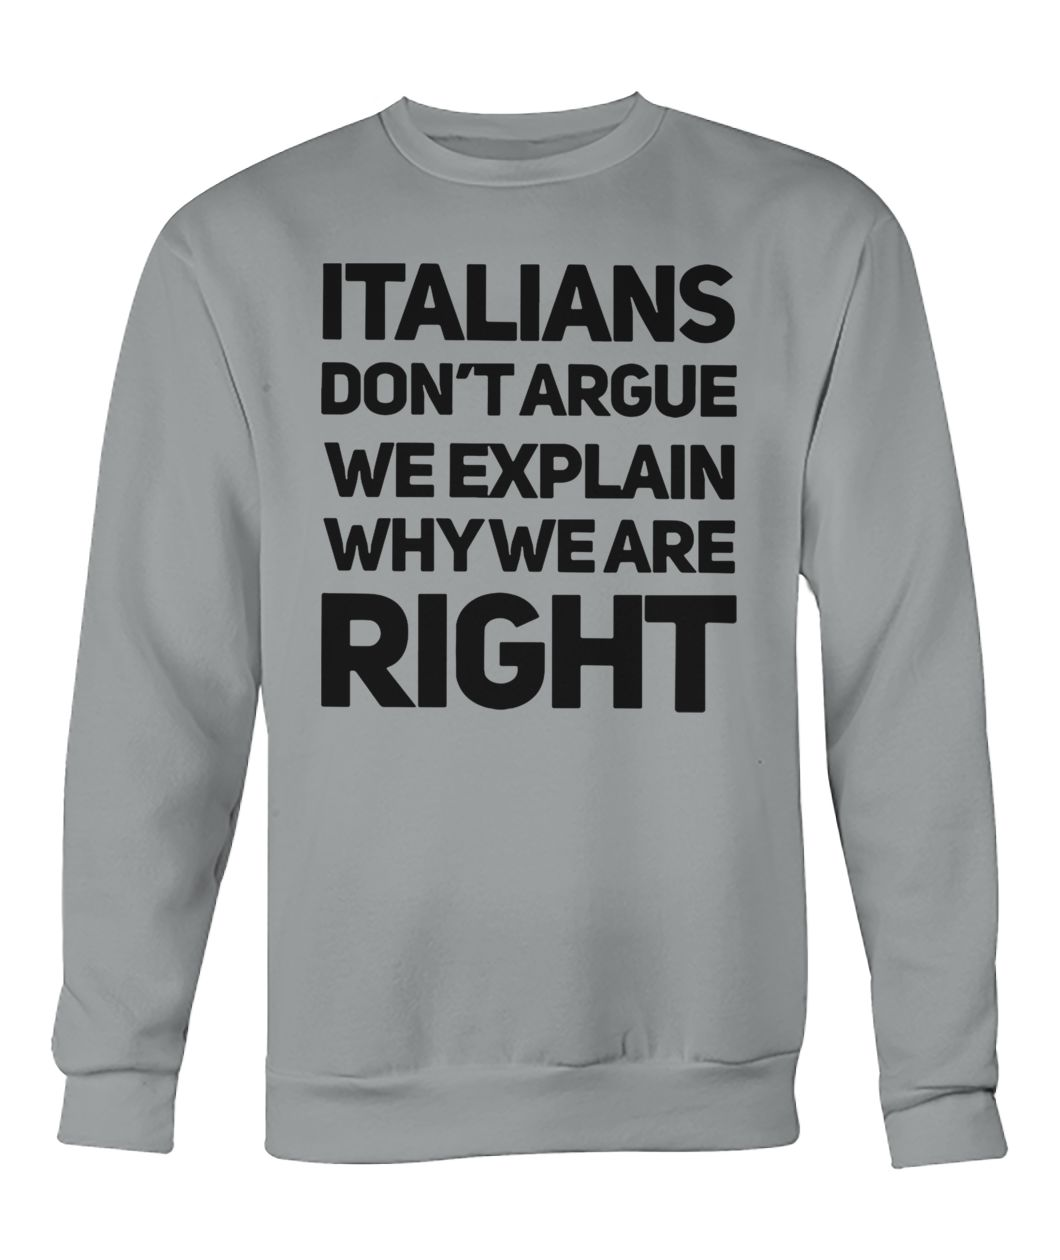 Italians don't argue we explain why we are right sweatshirt